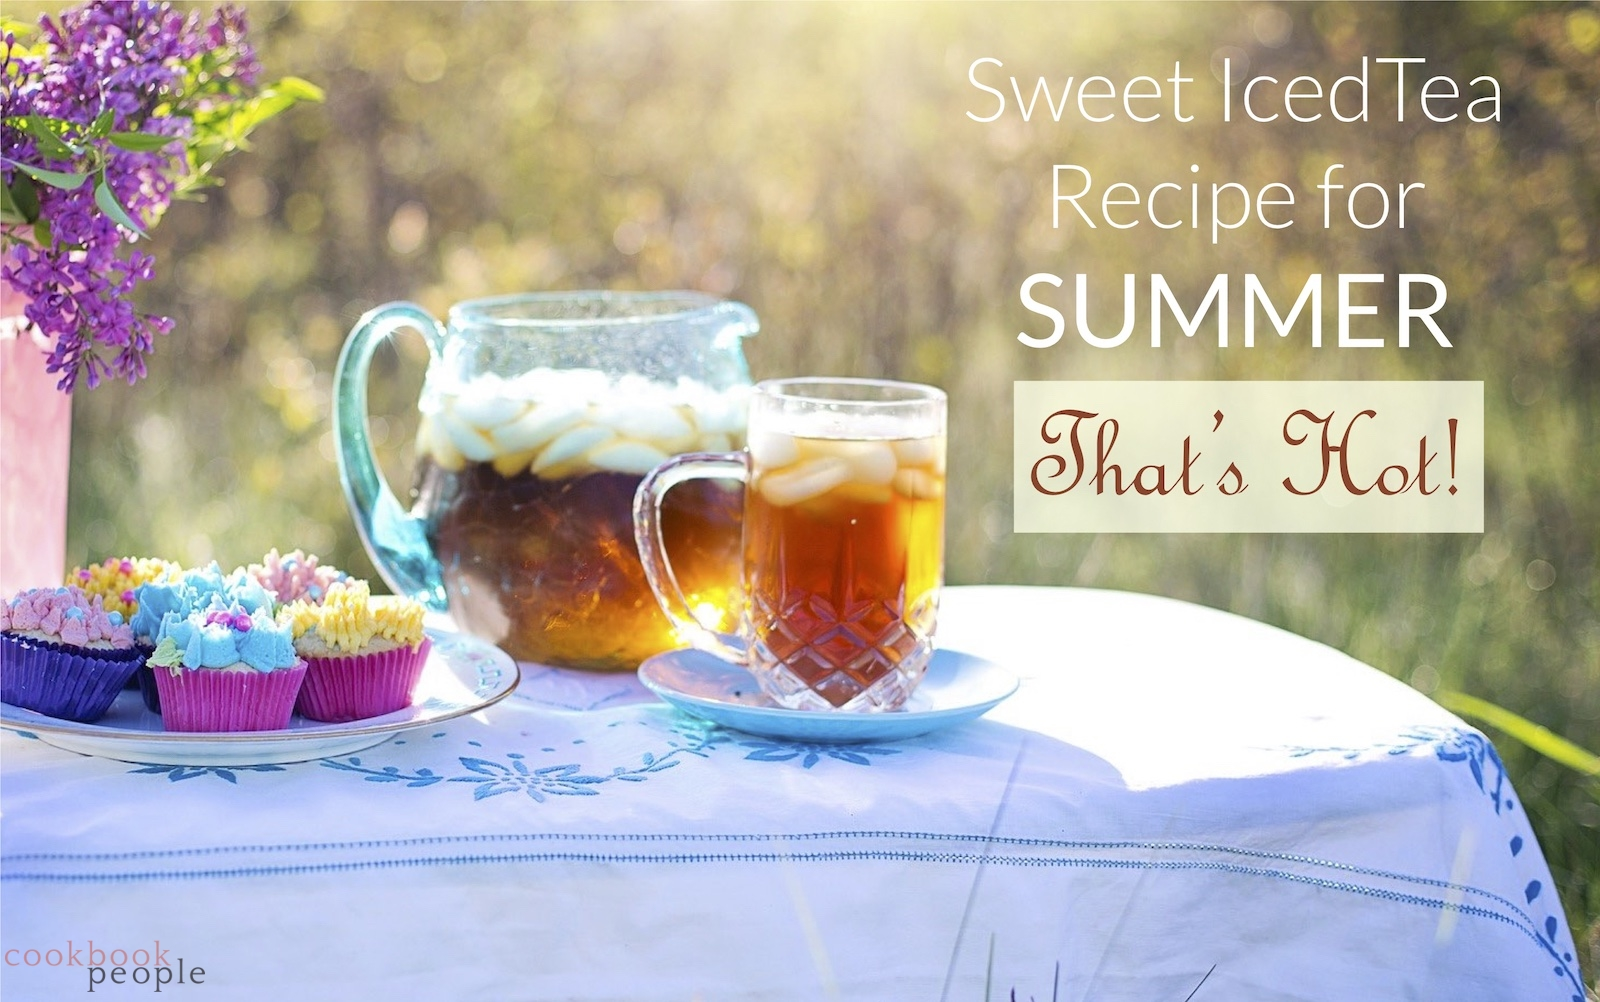 Jug of iced tea and glasses on summer table with title: Sweet Iced Tea Recipe for Summer: That's Hot!